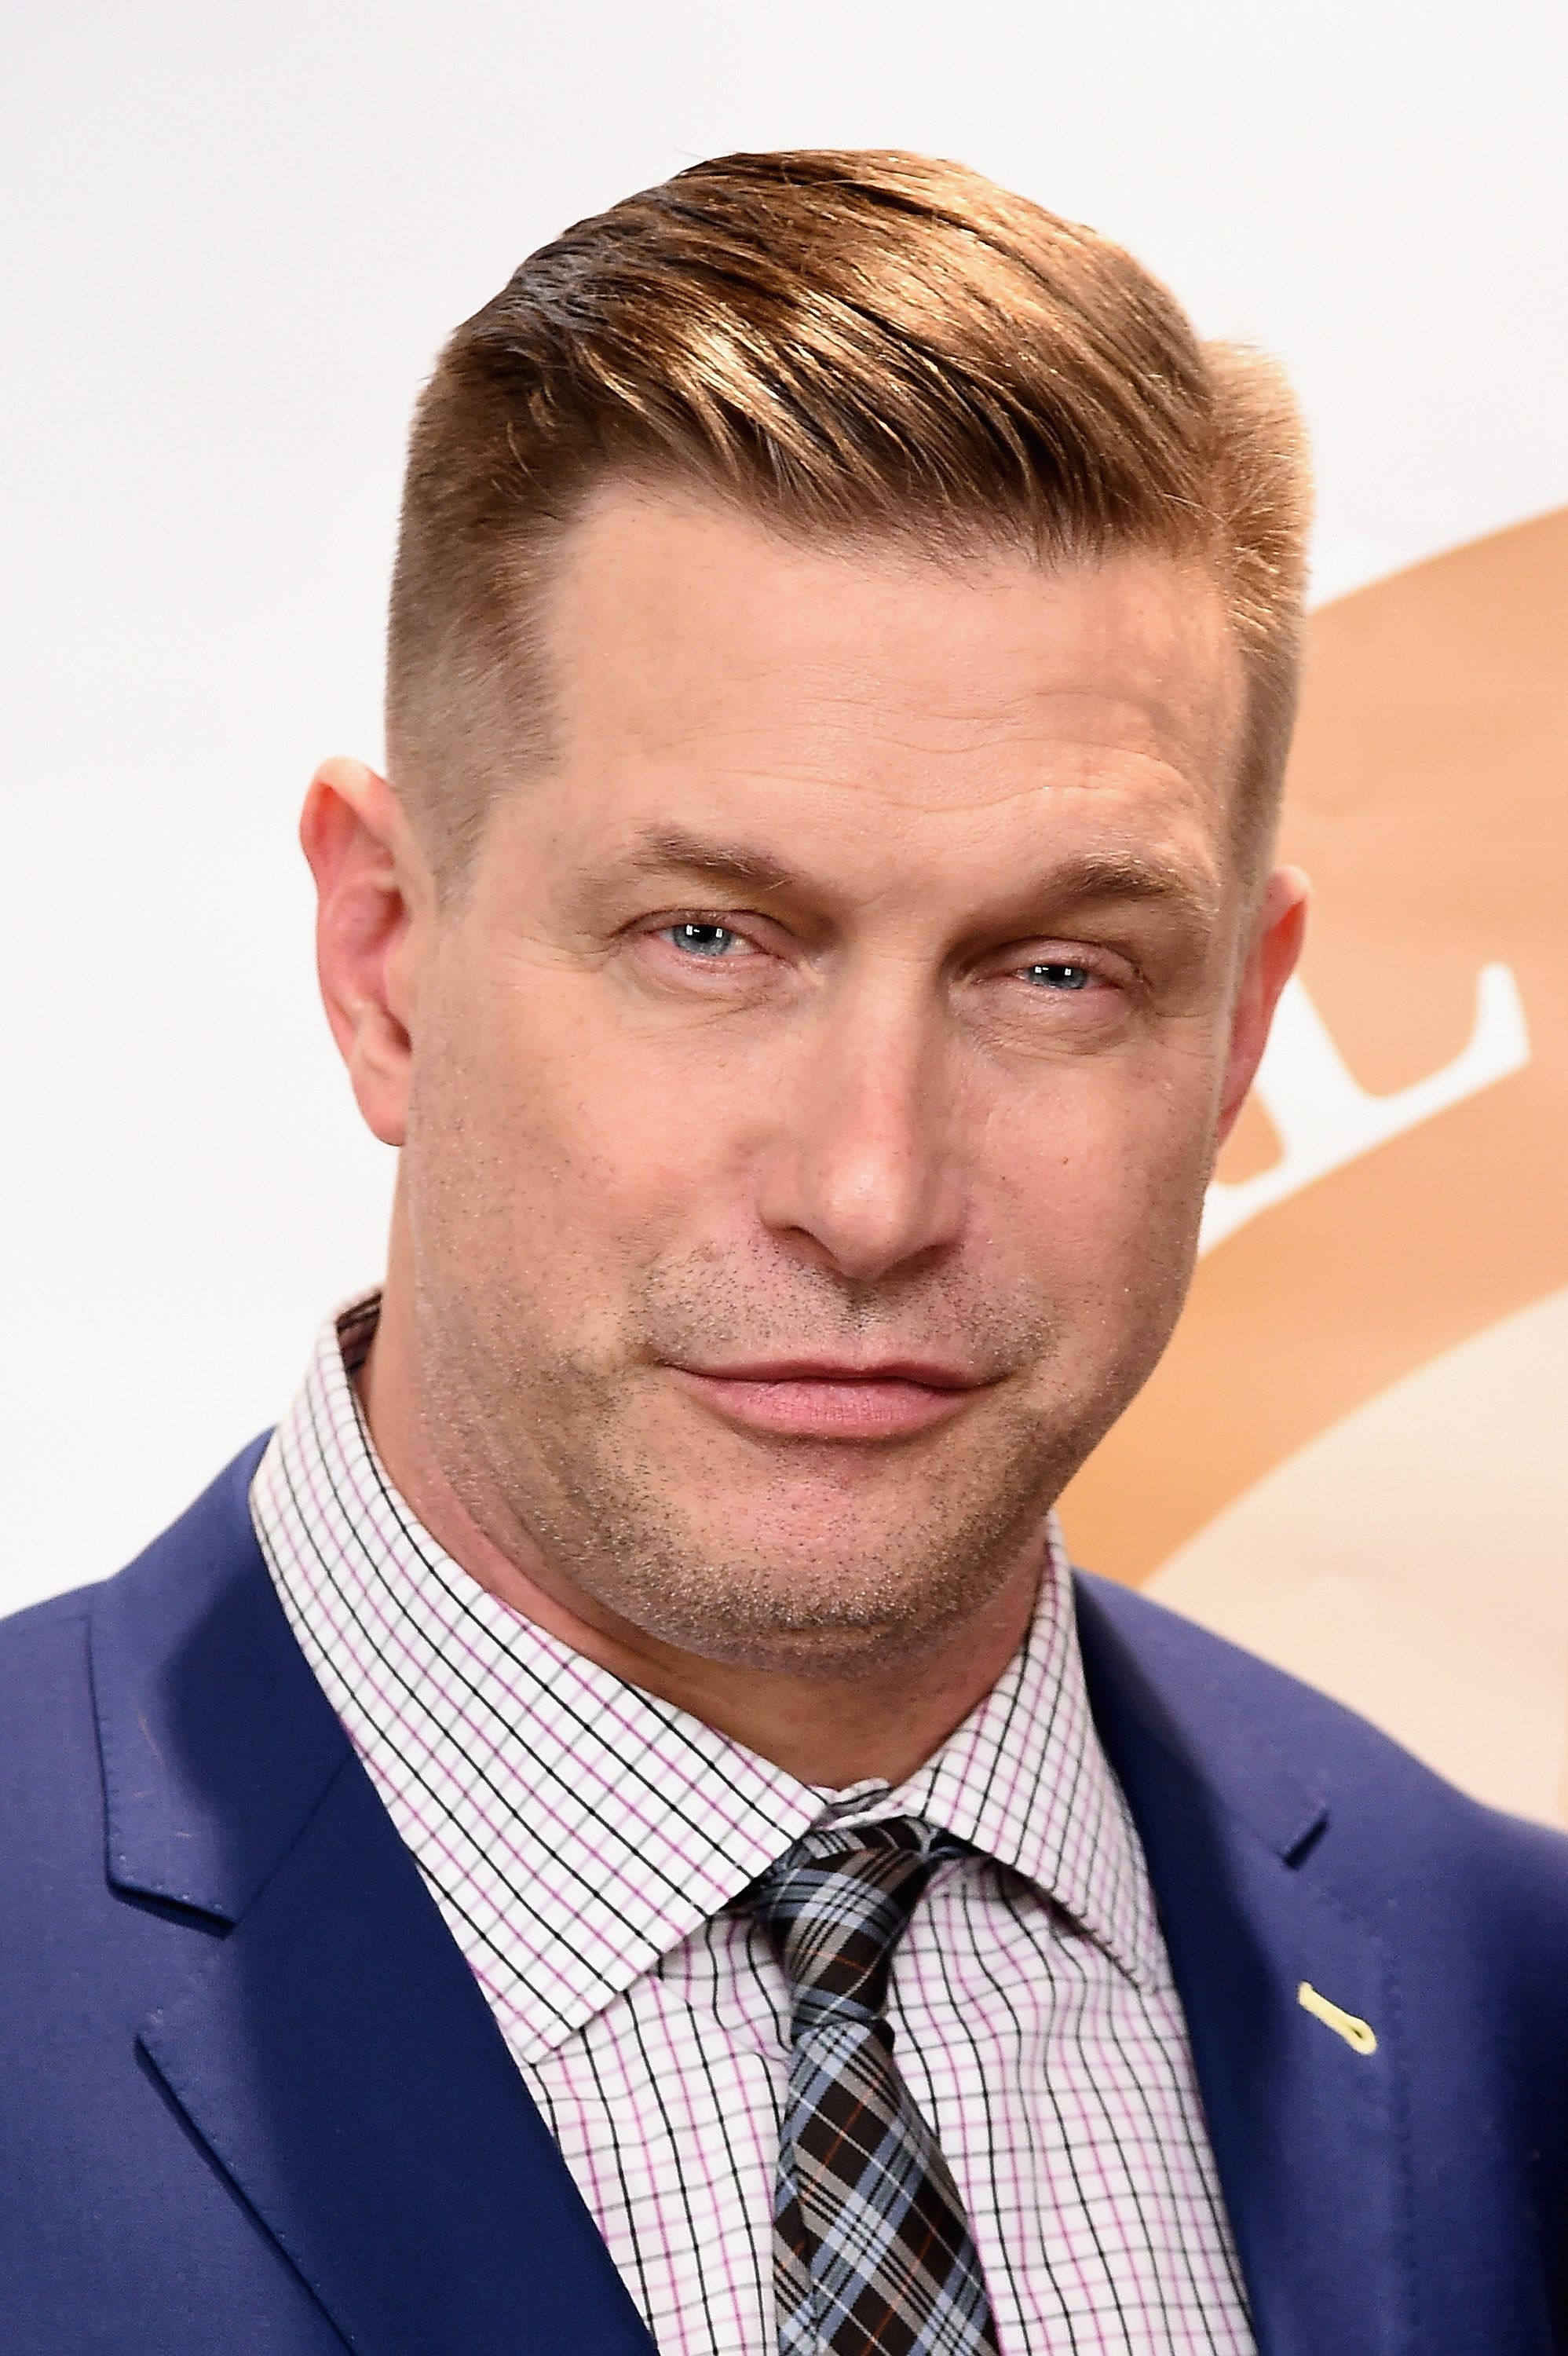 NEW YORK, NY - MAY 19: Actor Stephen Baldwin attends the Federal Enforcement Homeland Security Foundation 2016 Ridge Awards at Sheraton Times Square on May 19, 2016 in New York City.  (Photo by Ilya S. Savenok/Getty Images for FEHSF)